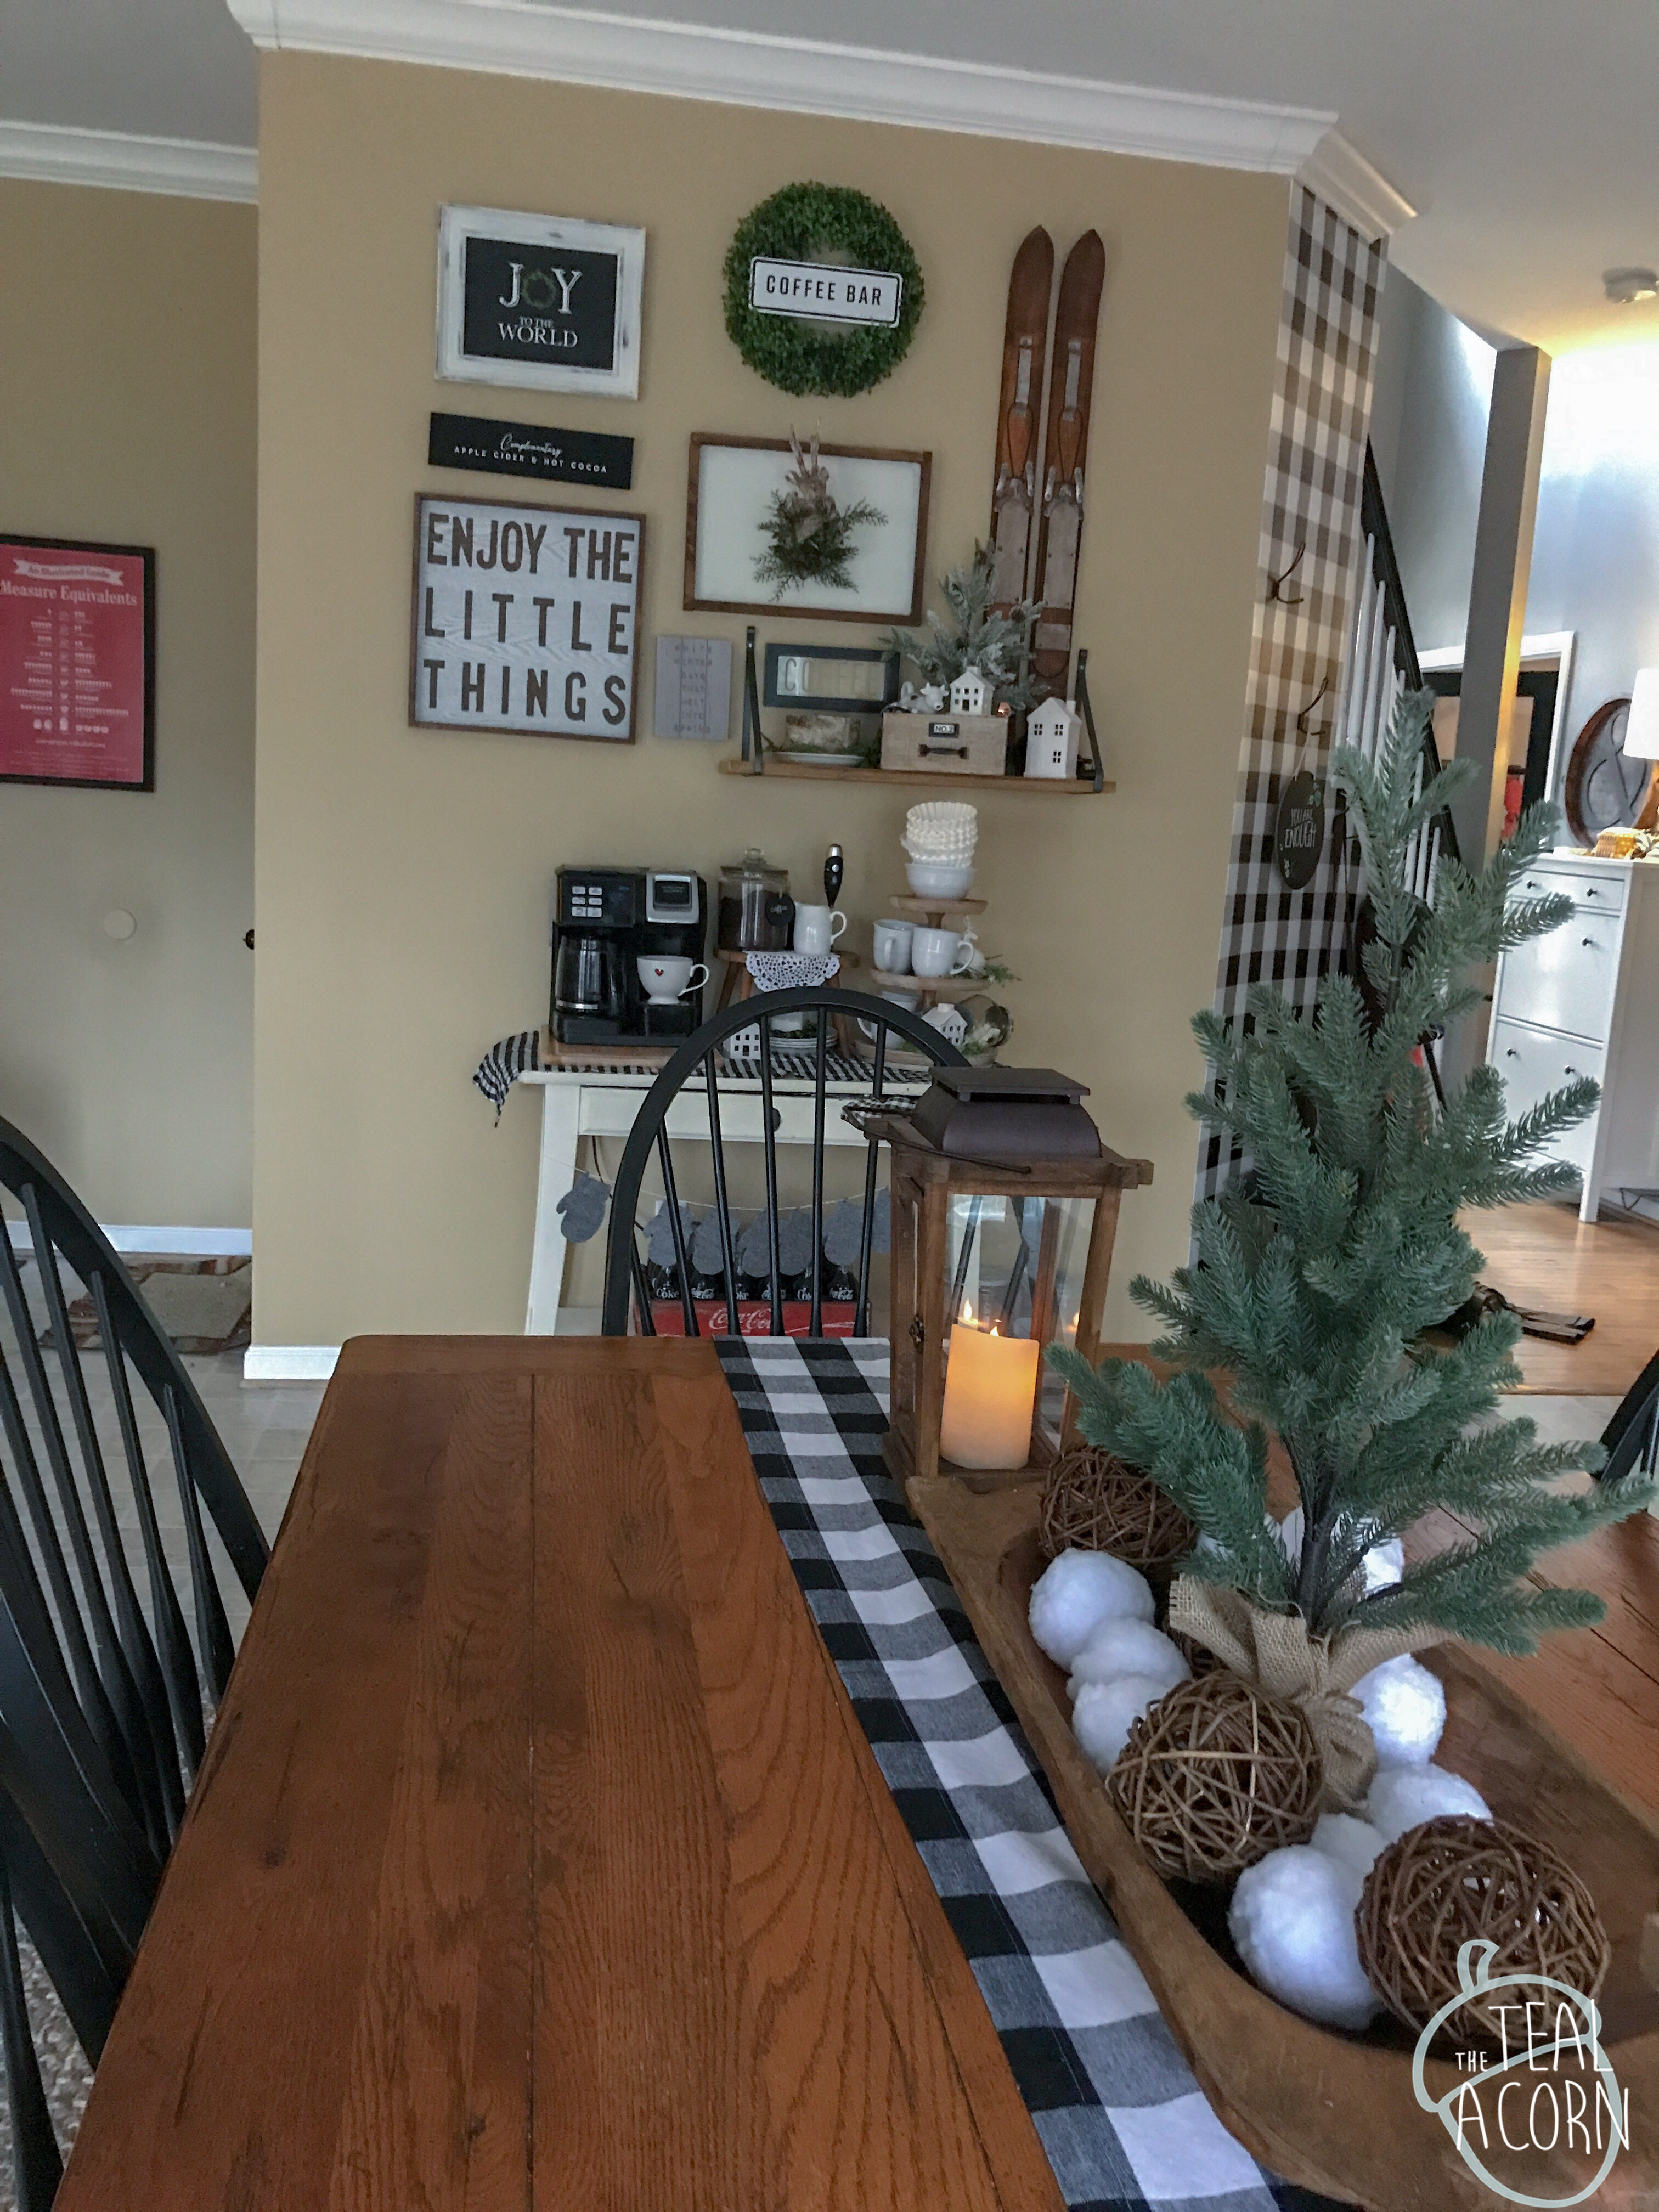 Winter gallery wall that changes seasonally. Farmhouse style signs located above a coffee bar. Large Farmhouse table with buffalo check runner, dough bowl, winter centerpiece, and wooden lanterns.  Ikea Hemnes Shoe cabinet iand diy buffalo check plaid accent wall n the background.